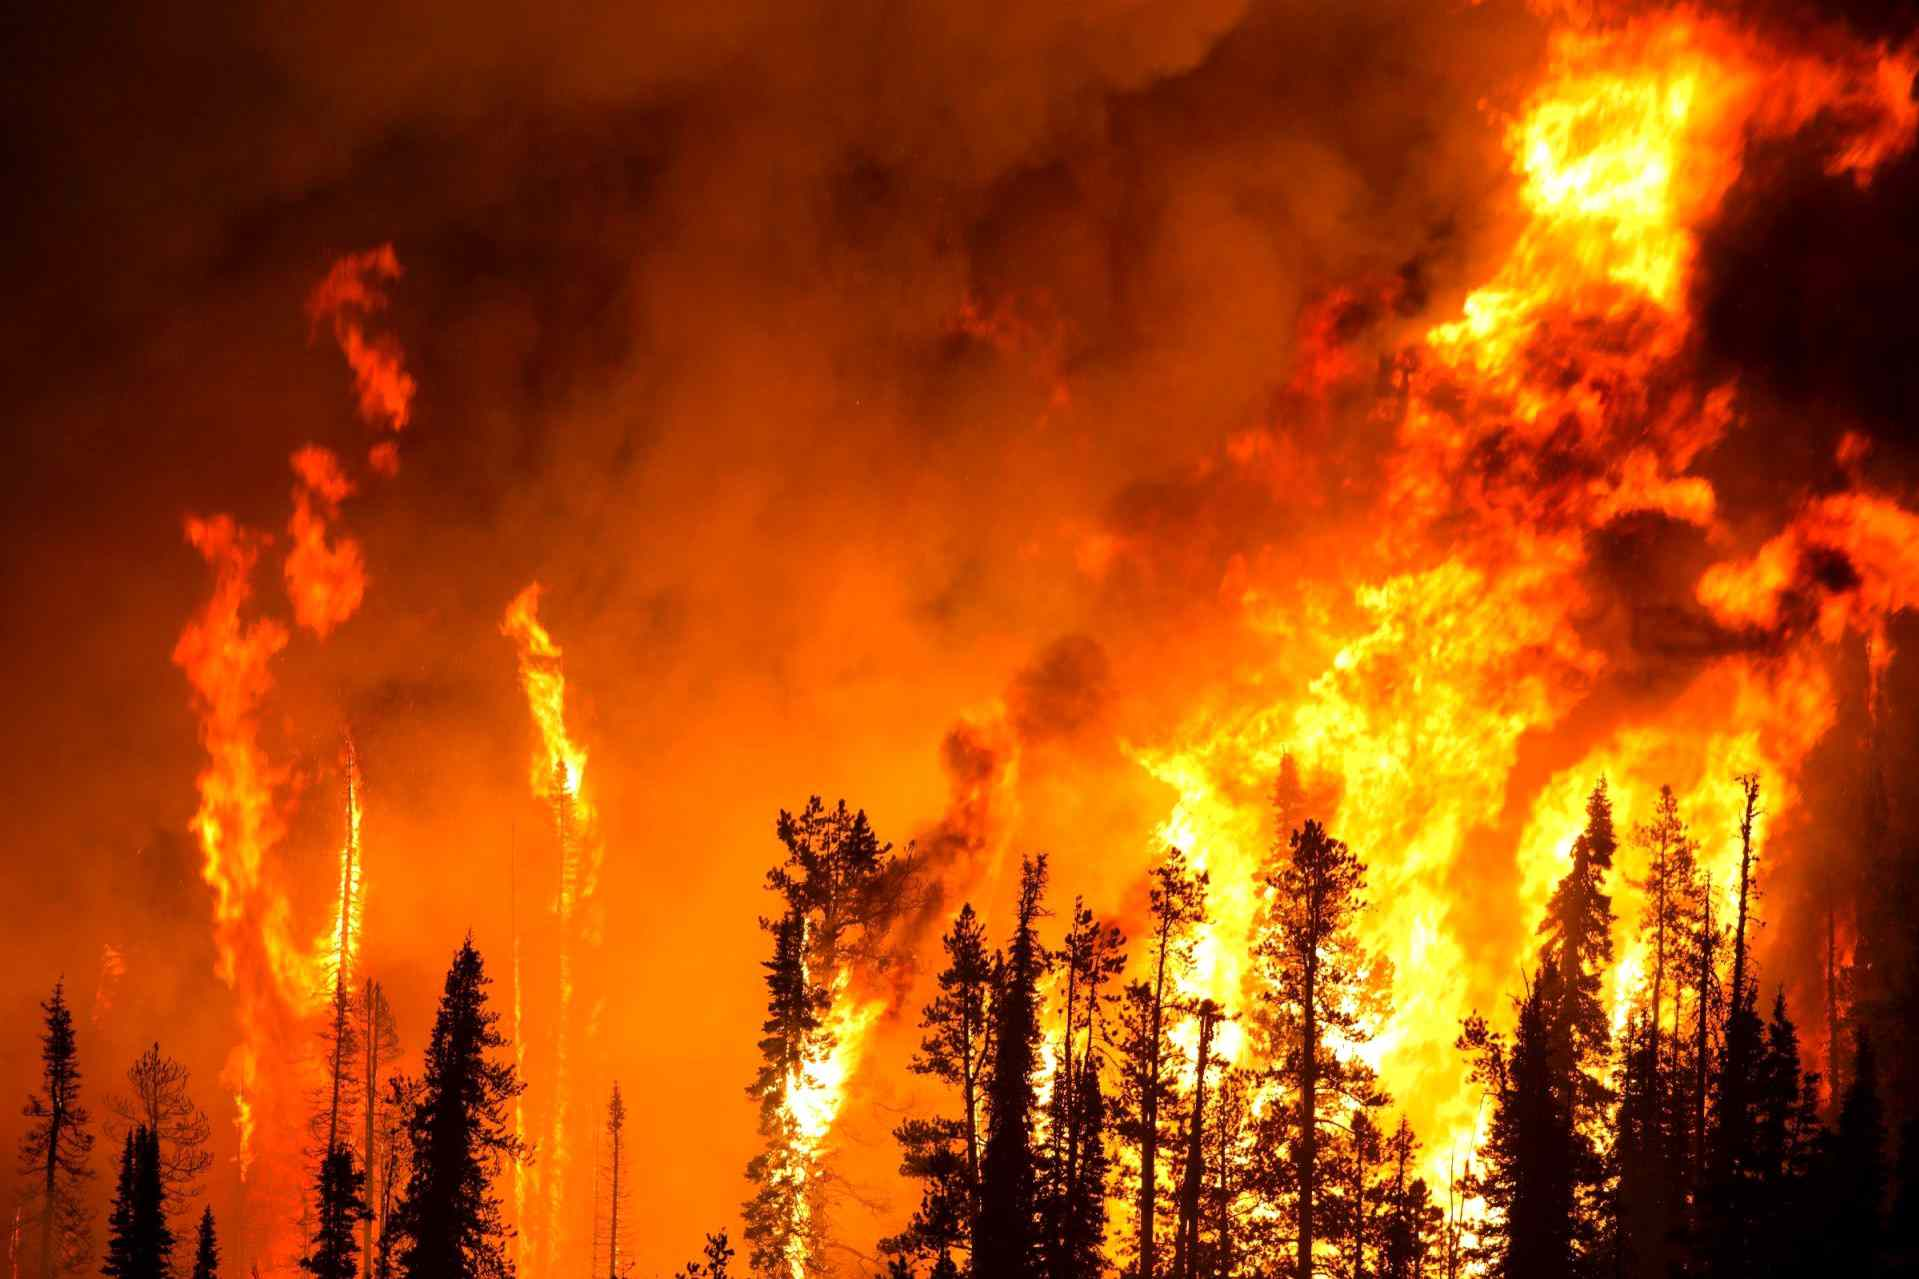 A smokey wildfire sends up spurts of white hot flame